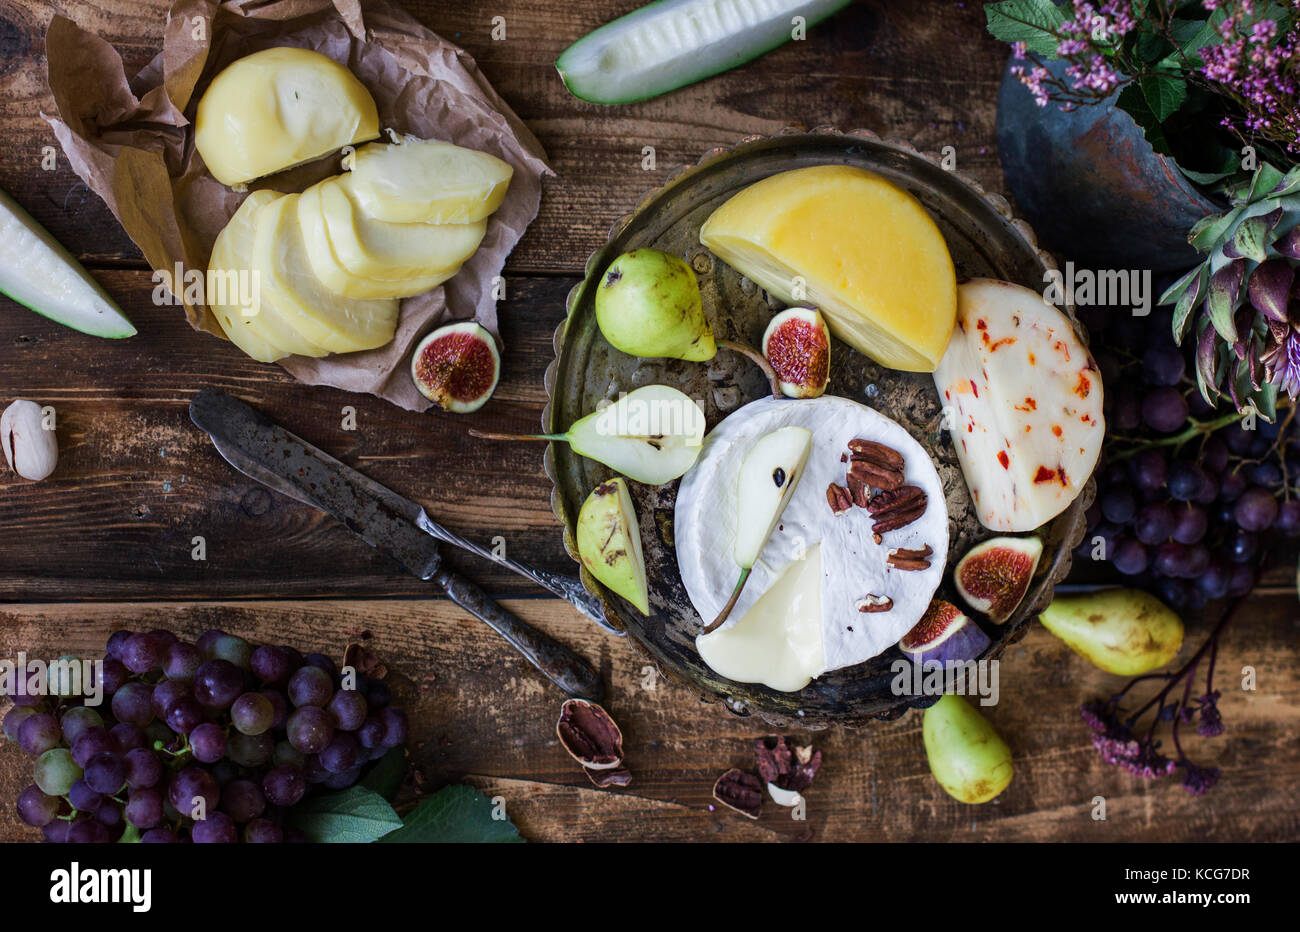 The different cheese and fresh fruits on the wooden background - Stock Image